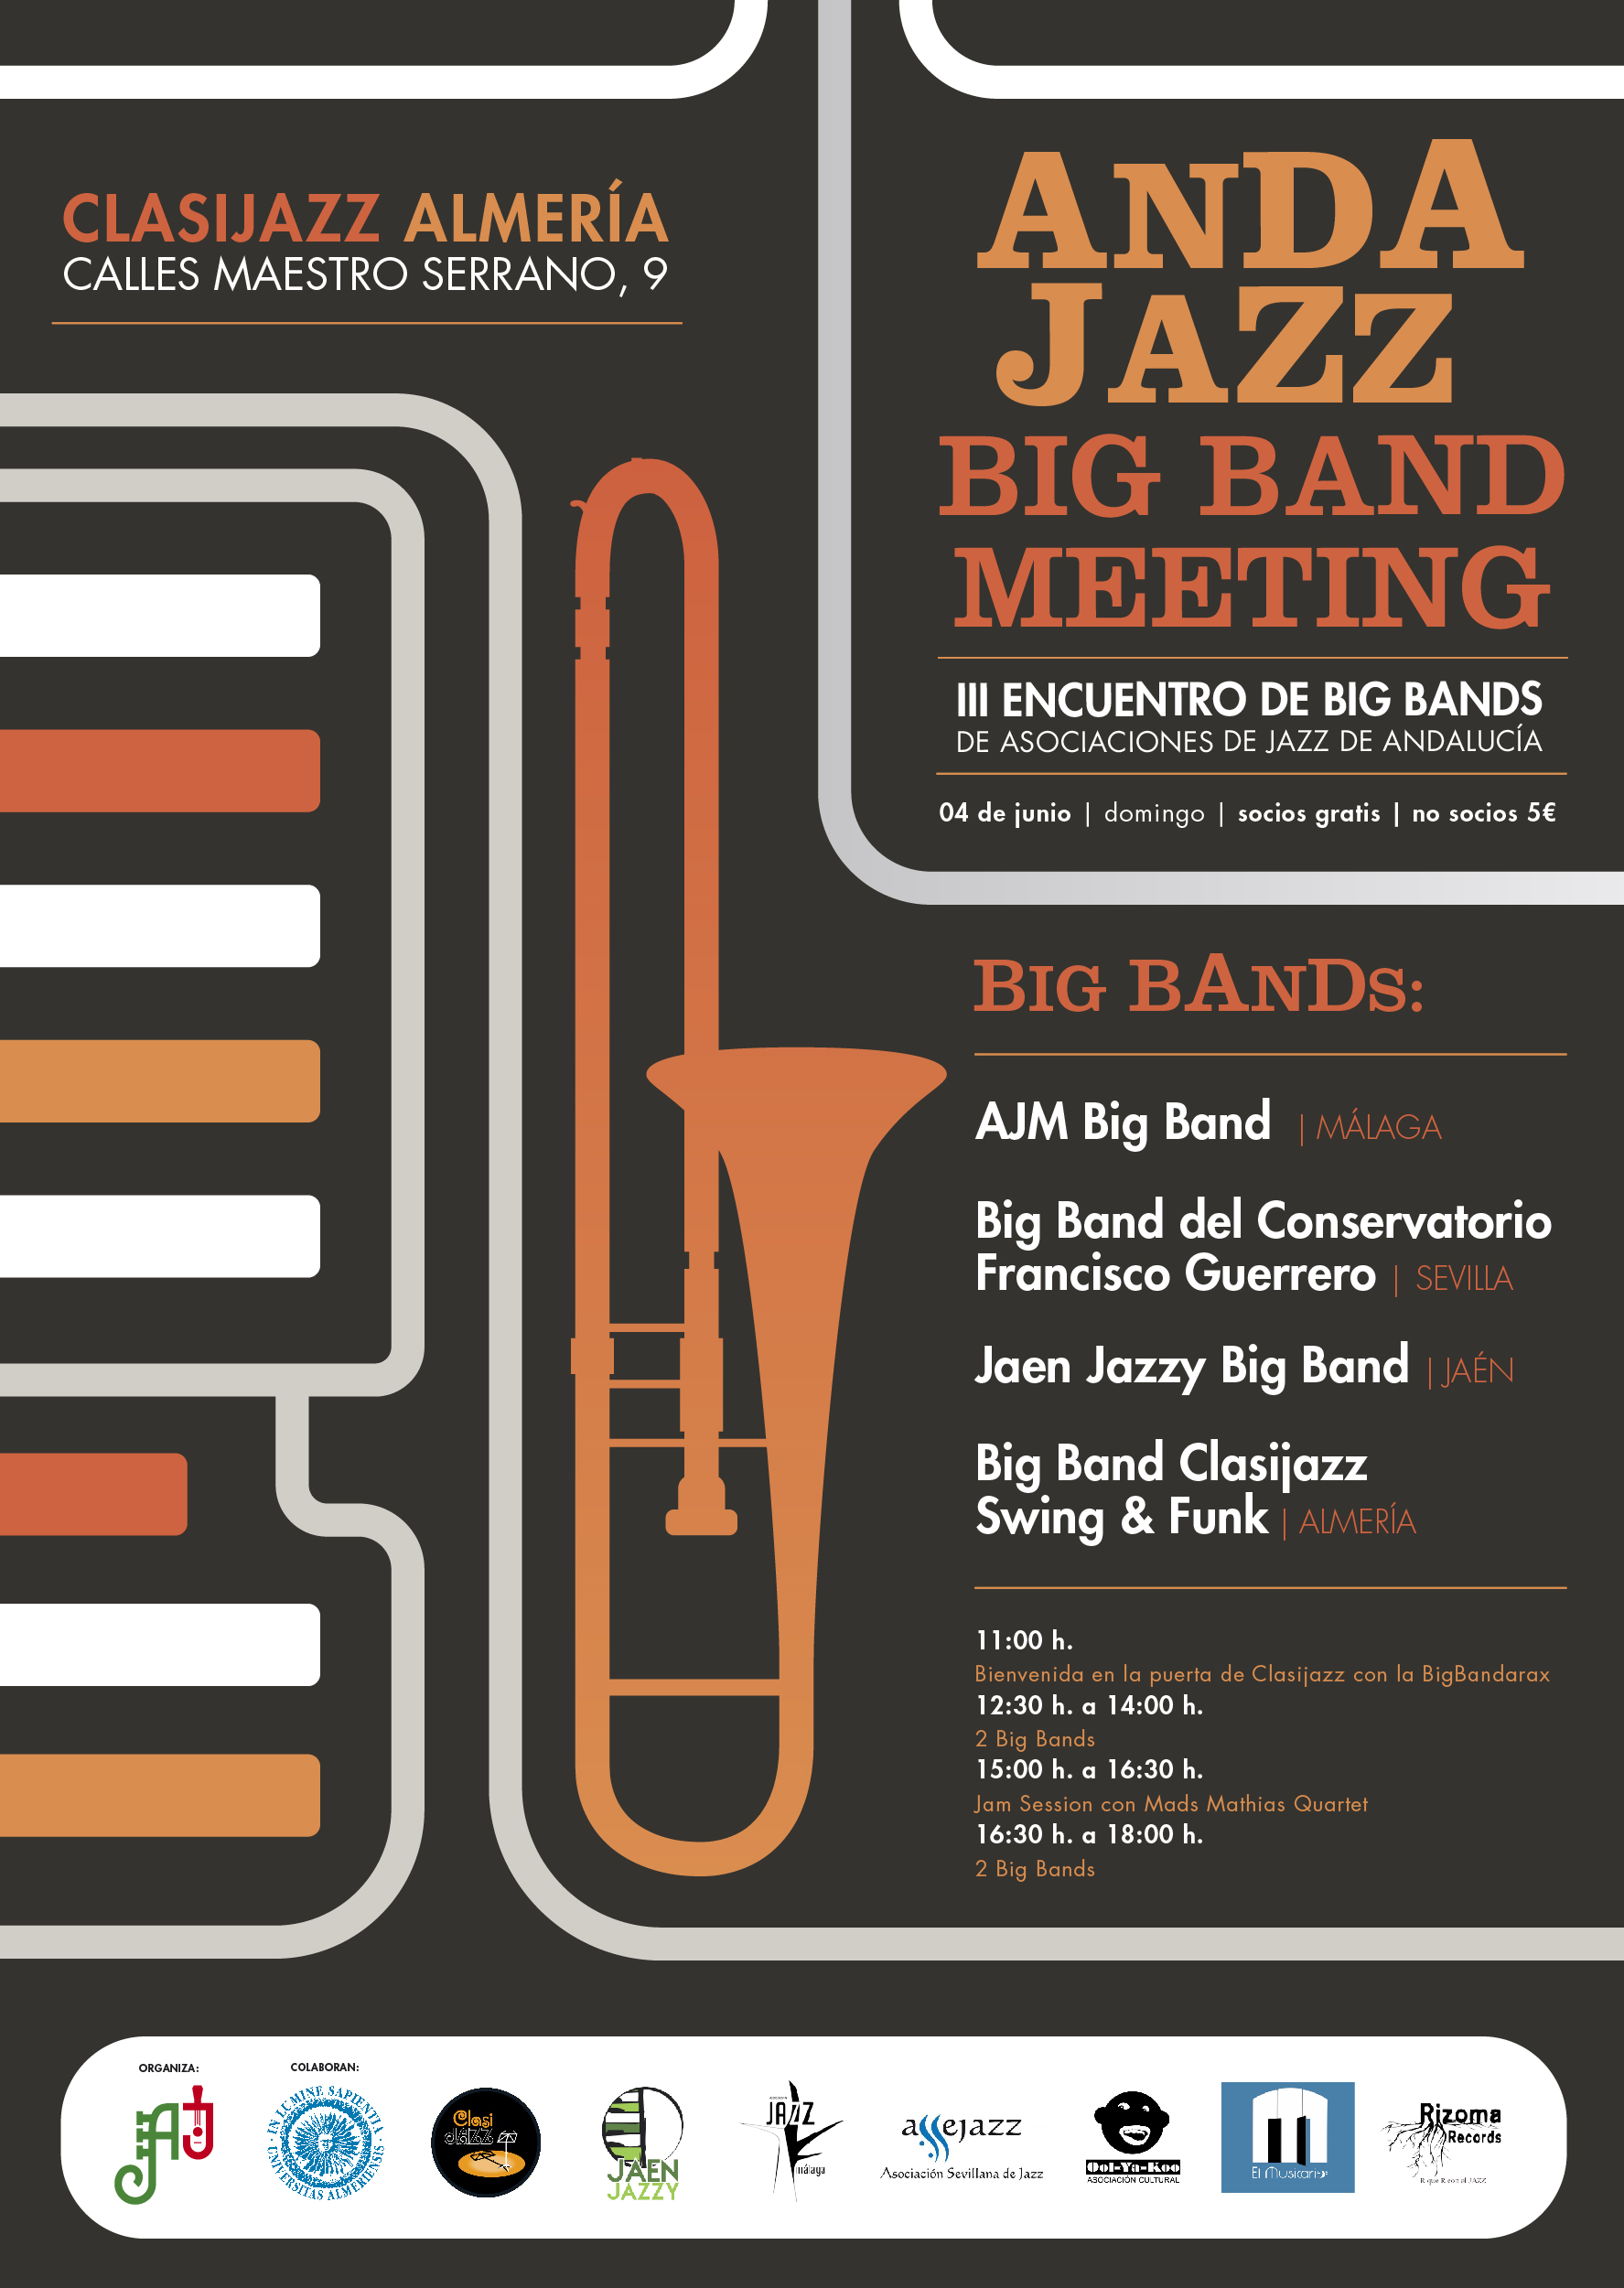 Anda Jazz Big Band Meeting-01